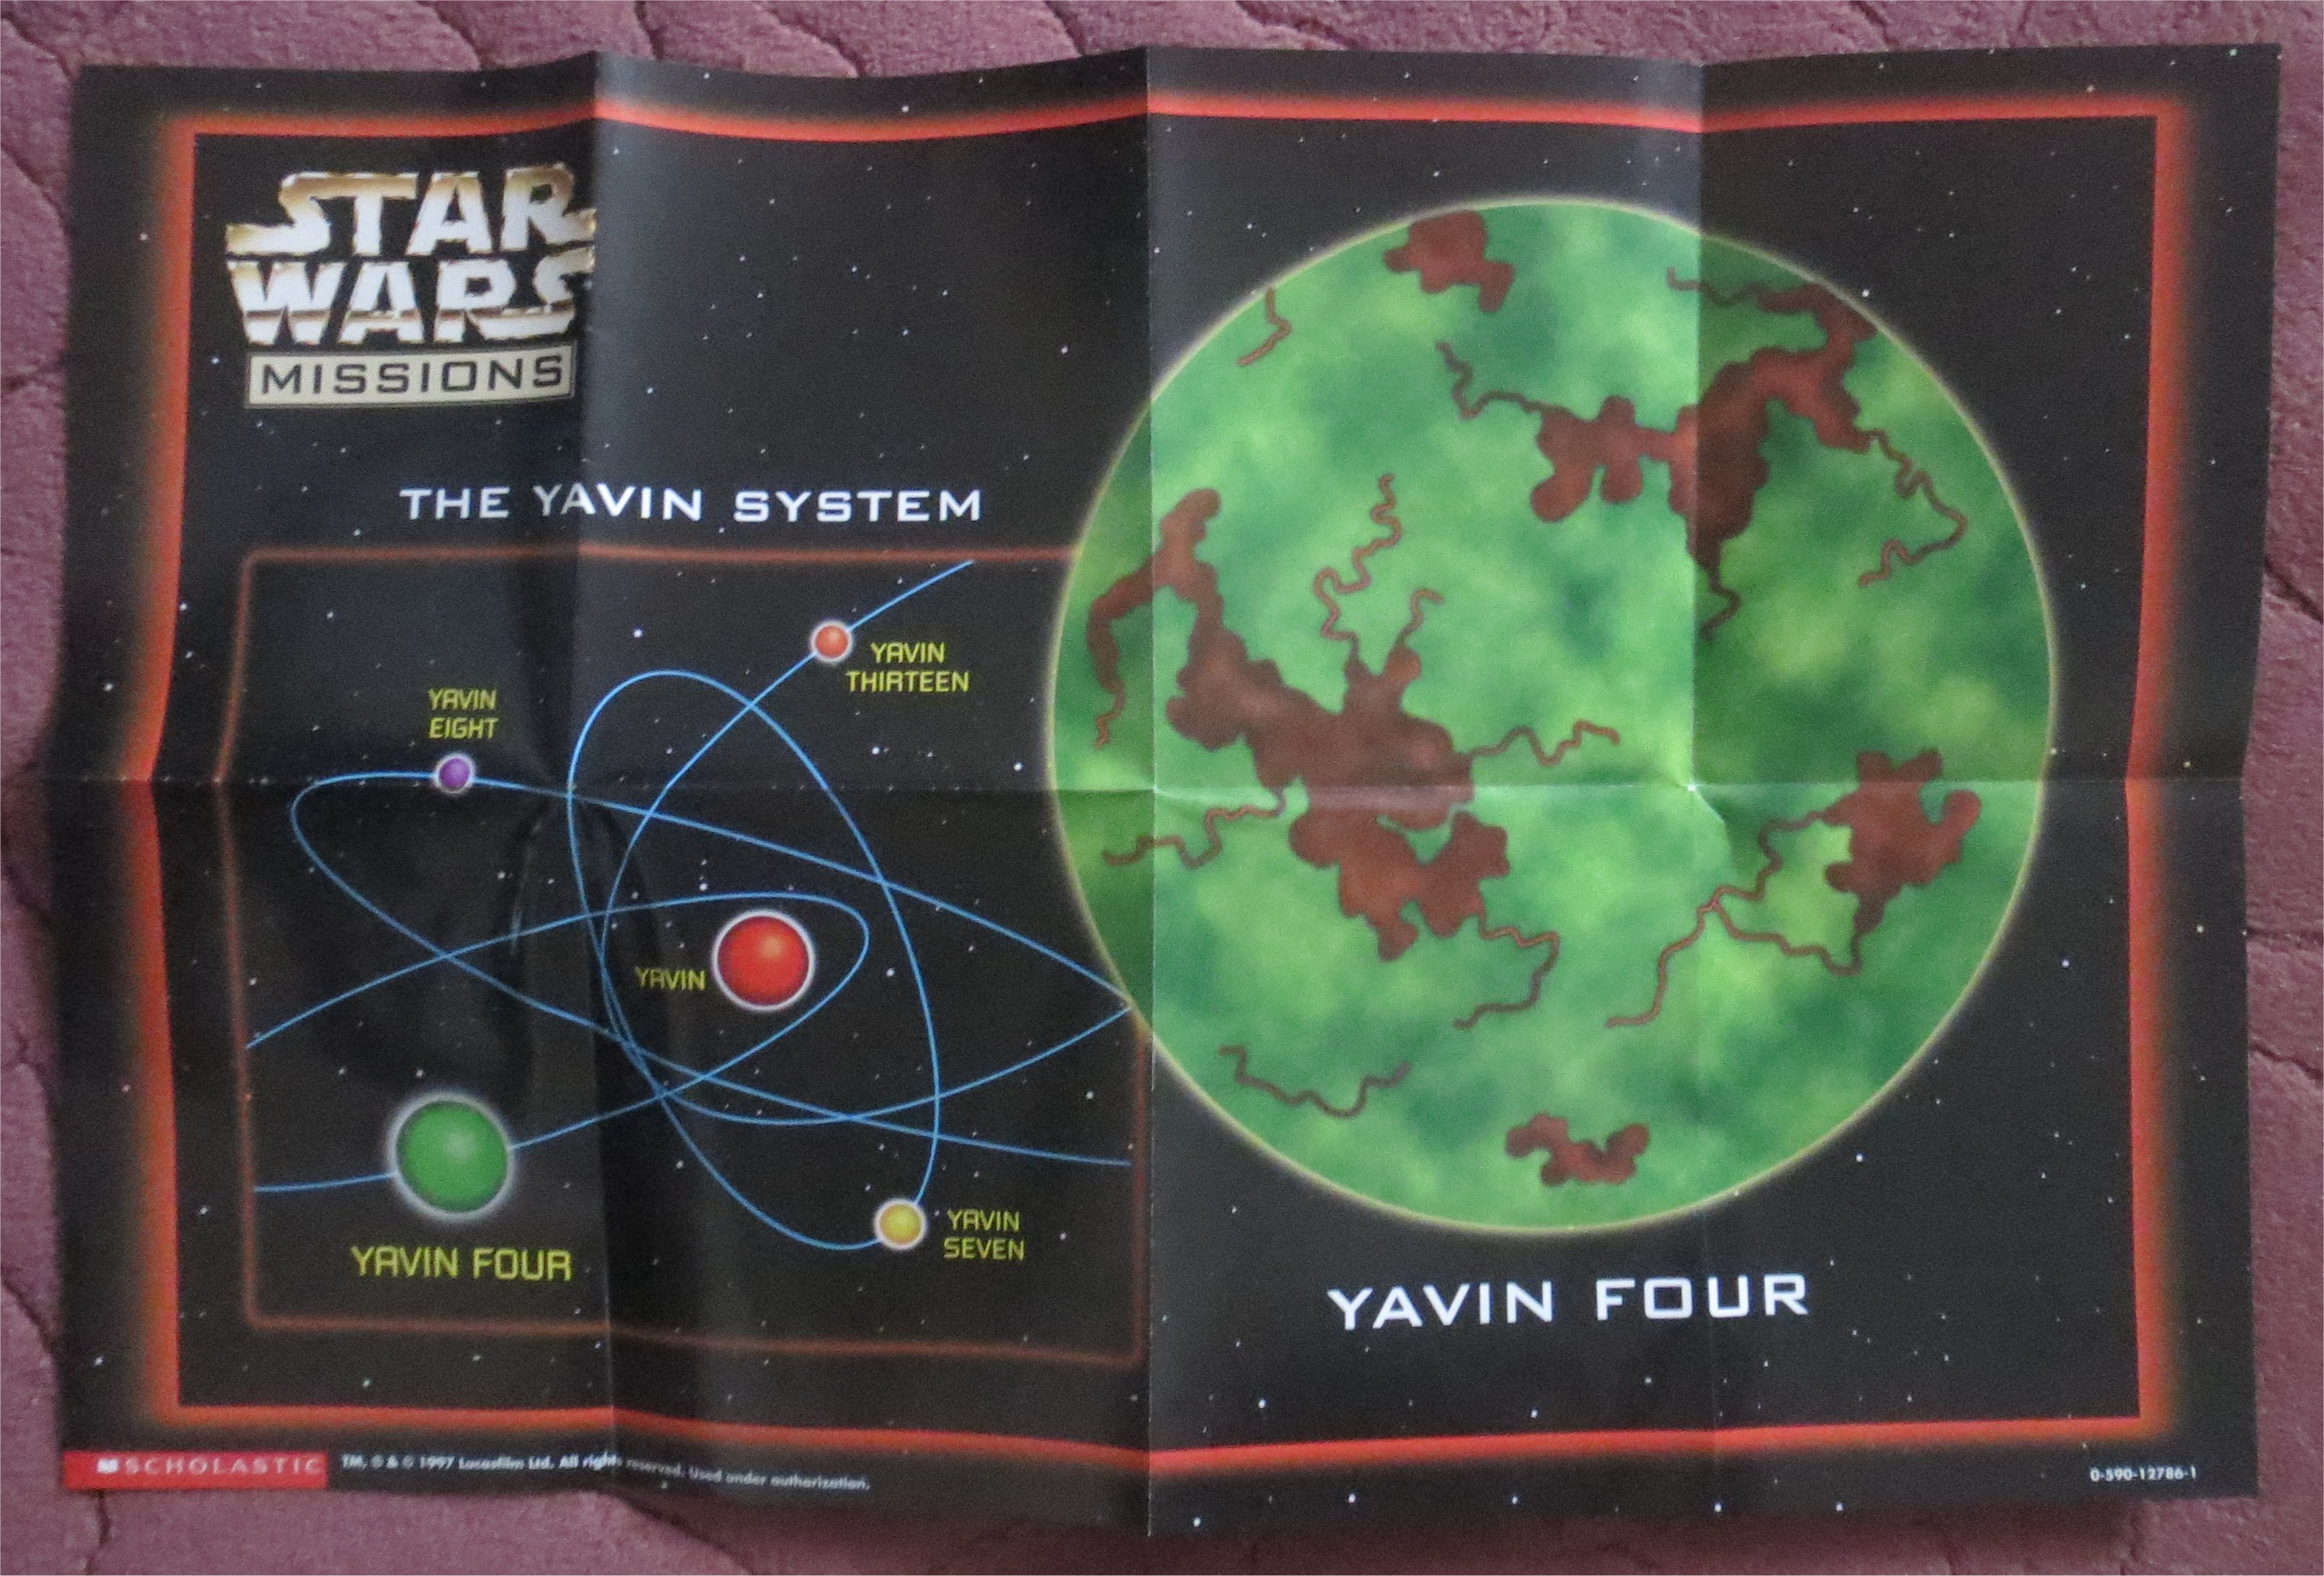 an analysis of star wars trilogy Transcript of poster textual analysis: star wars: the force awakens  especially as elements from the star wars original trilogy are being used,.